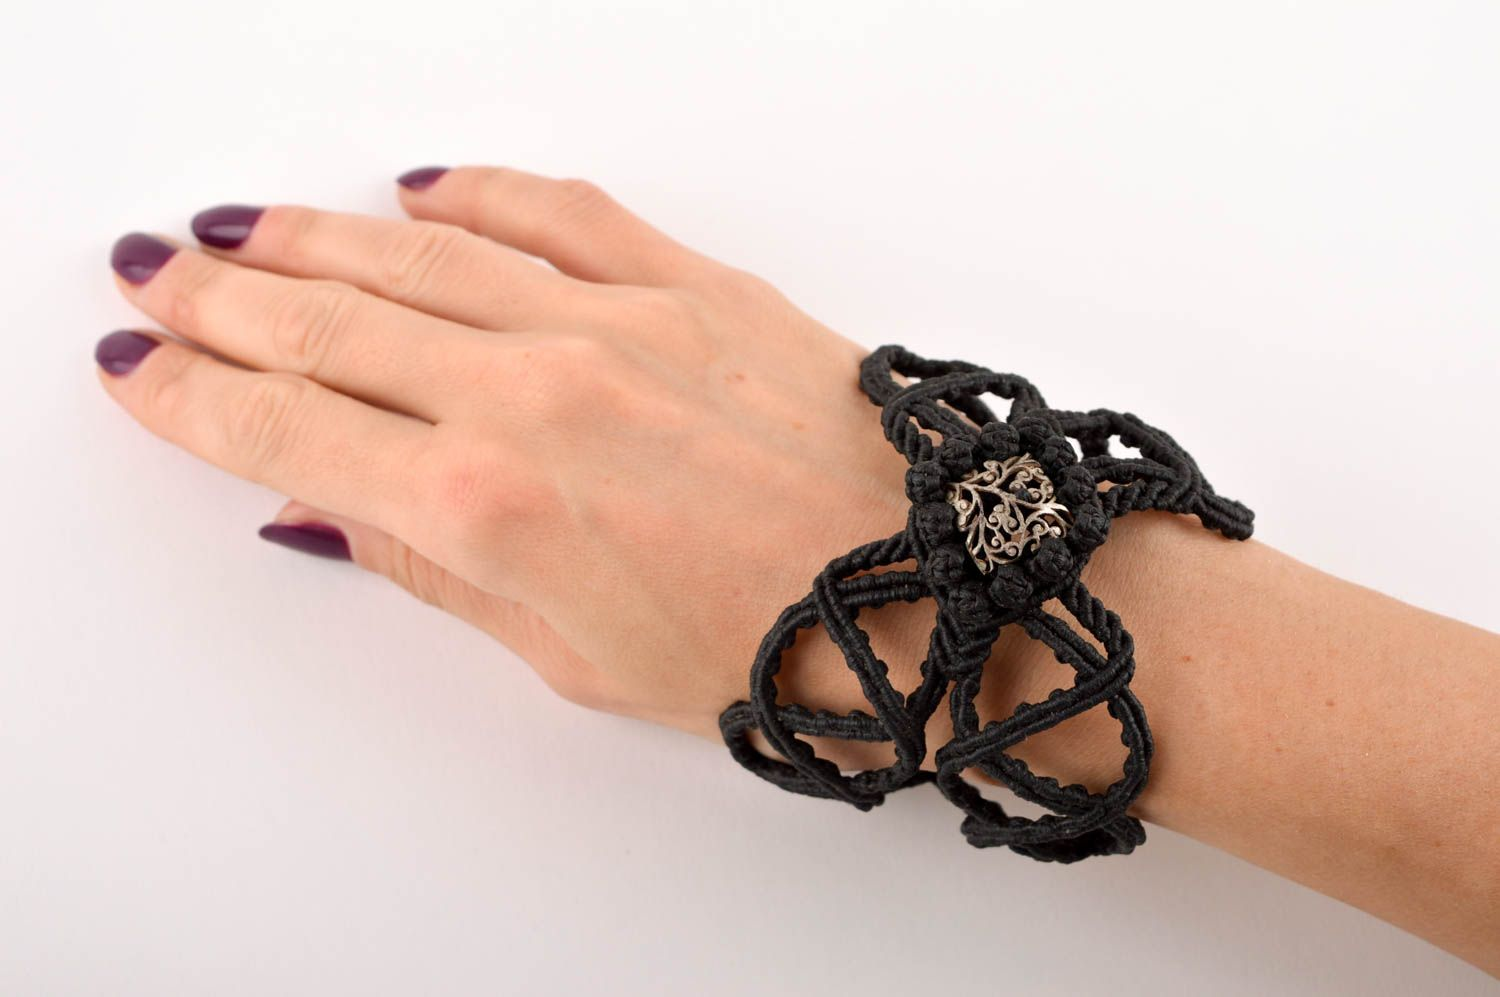 Unusual handmade macrame bracelet textile wrist bracelet fashion accessories photo 5